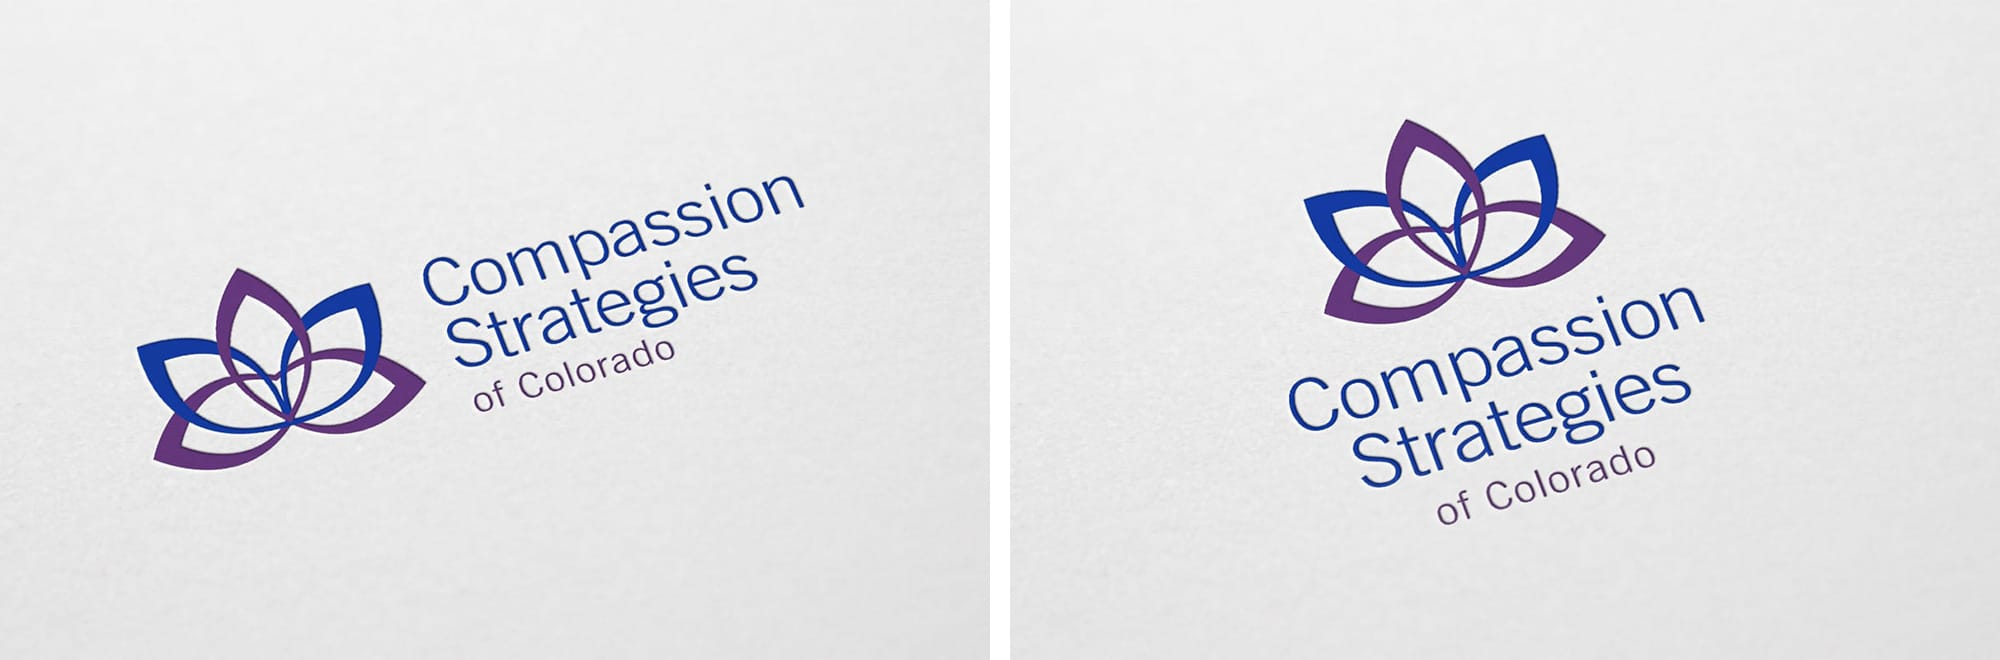 CompassionStrategies-logo-banner